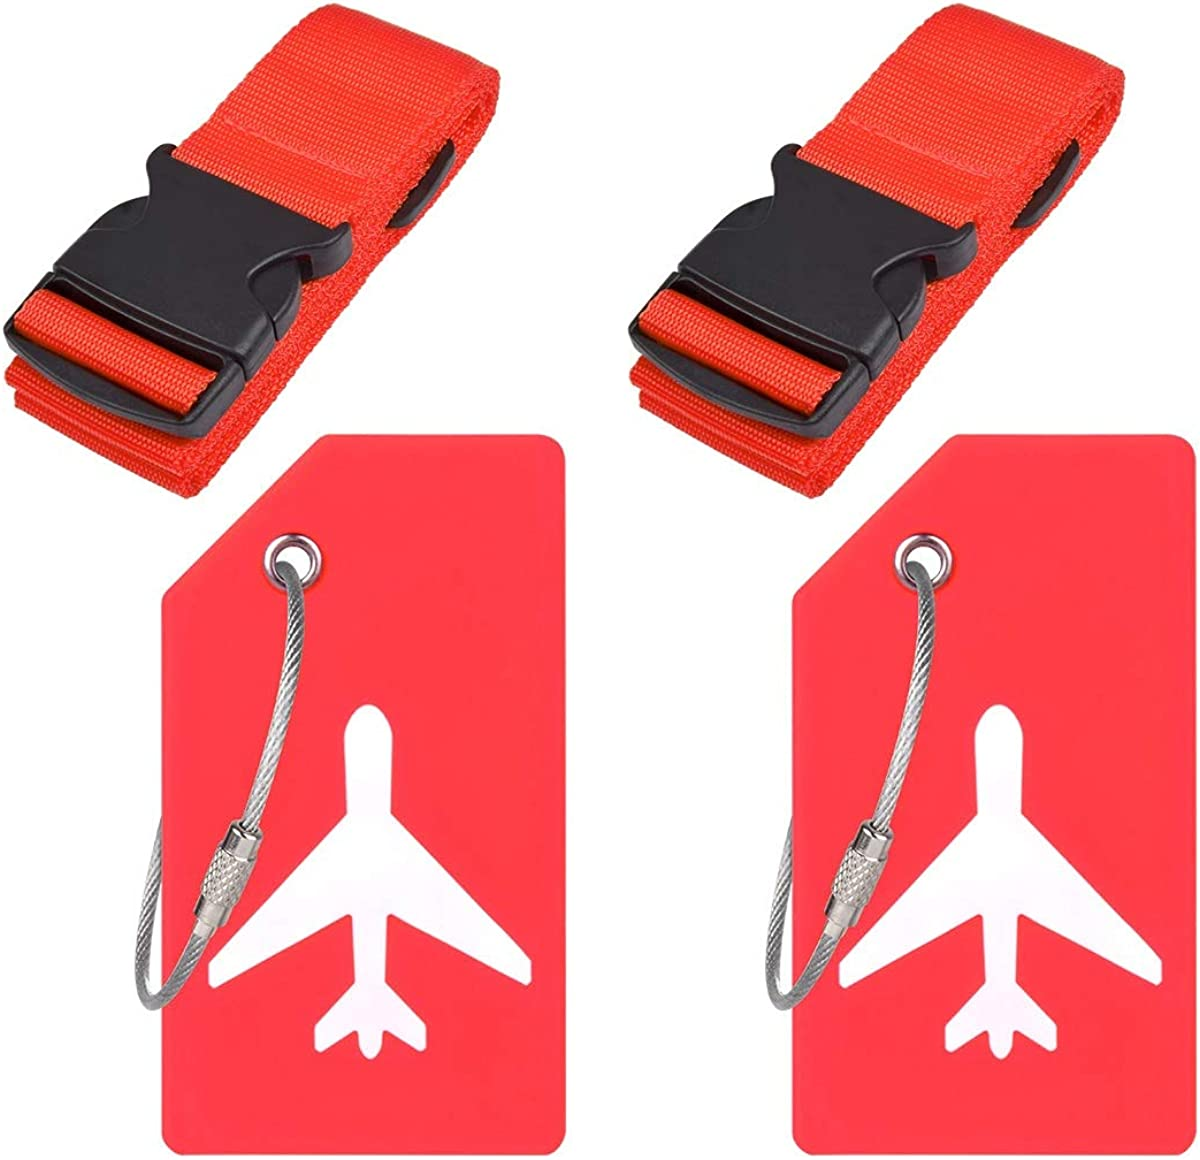 Ovener Travel Luggage Accessories-Adjustable Ranking integrated 1st Same day shipping place StrapsSili